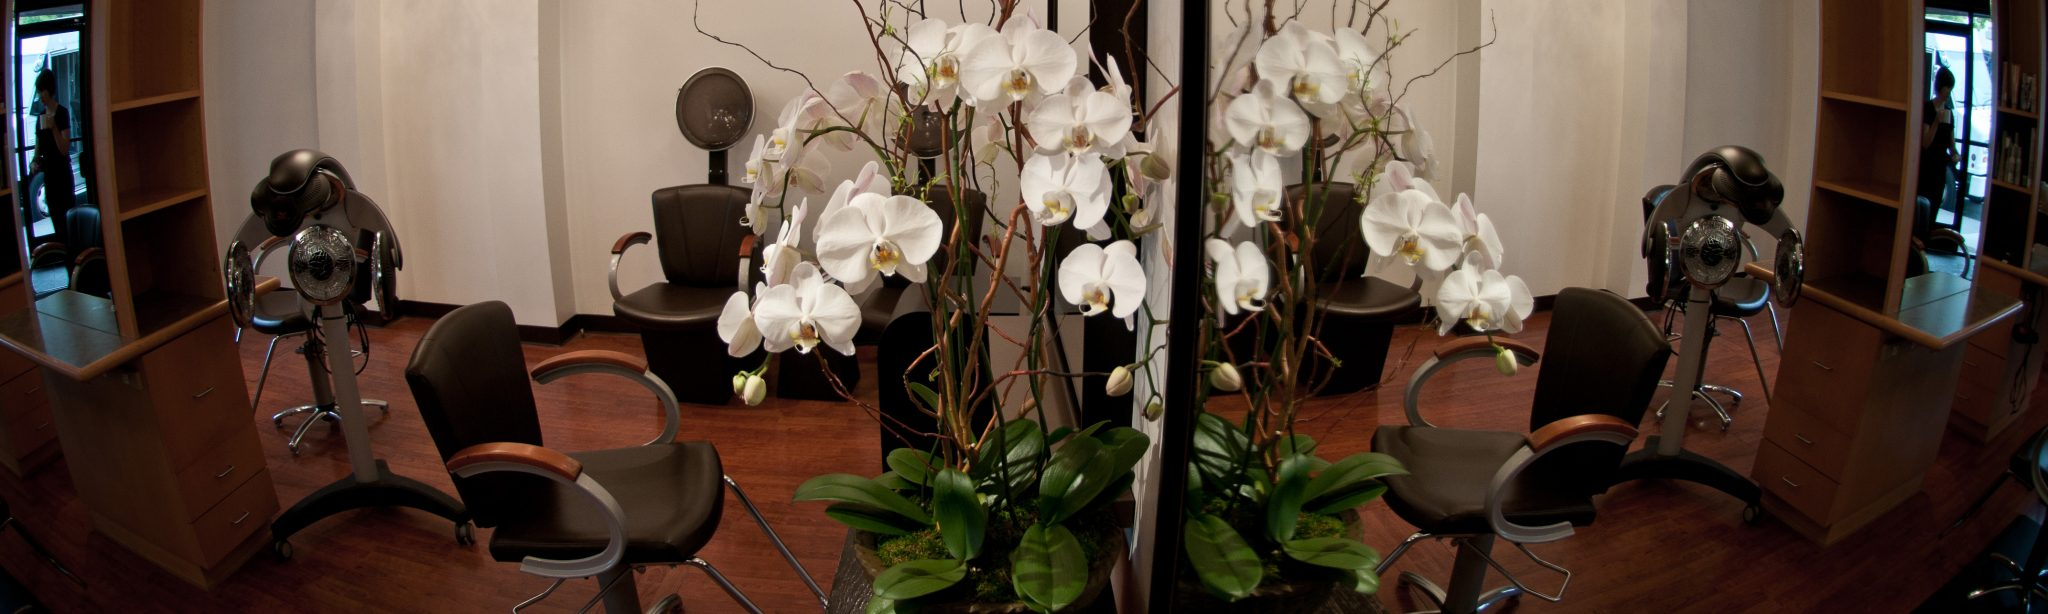 White Orchids by Salon Chairs